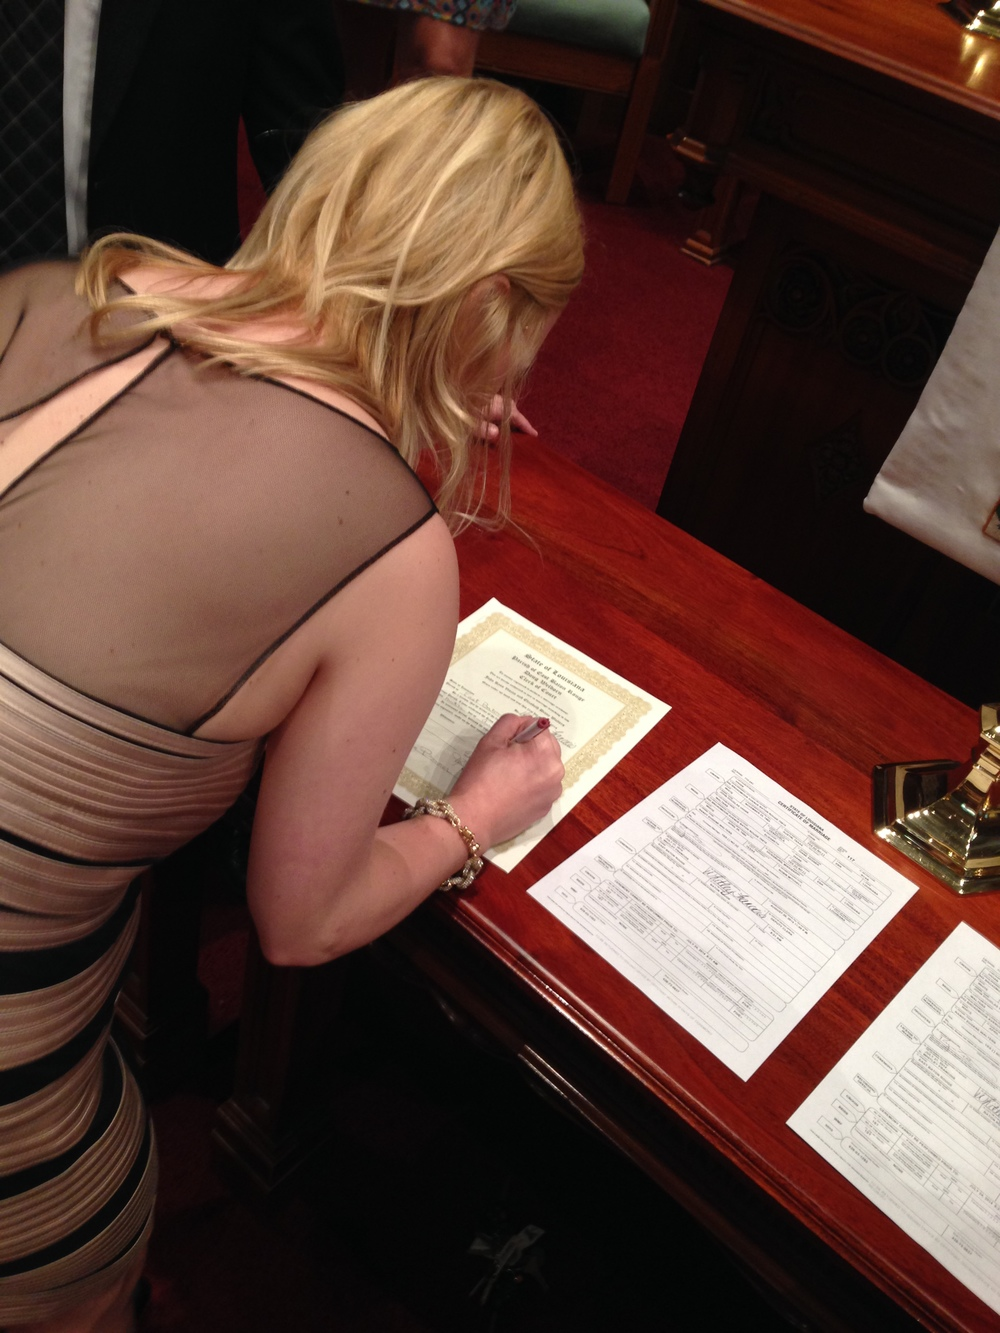 Signing my life away. I kid. I kid.